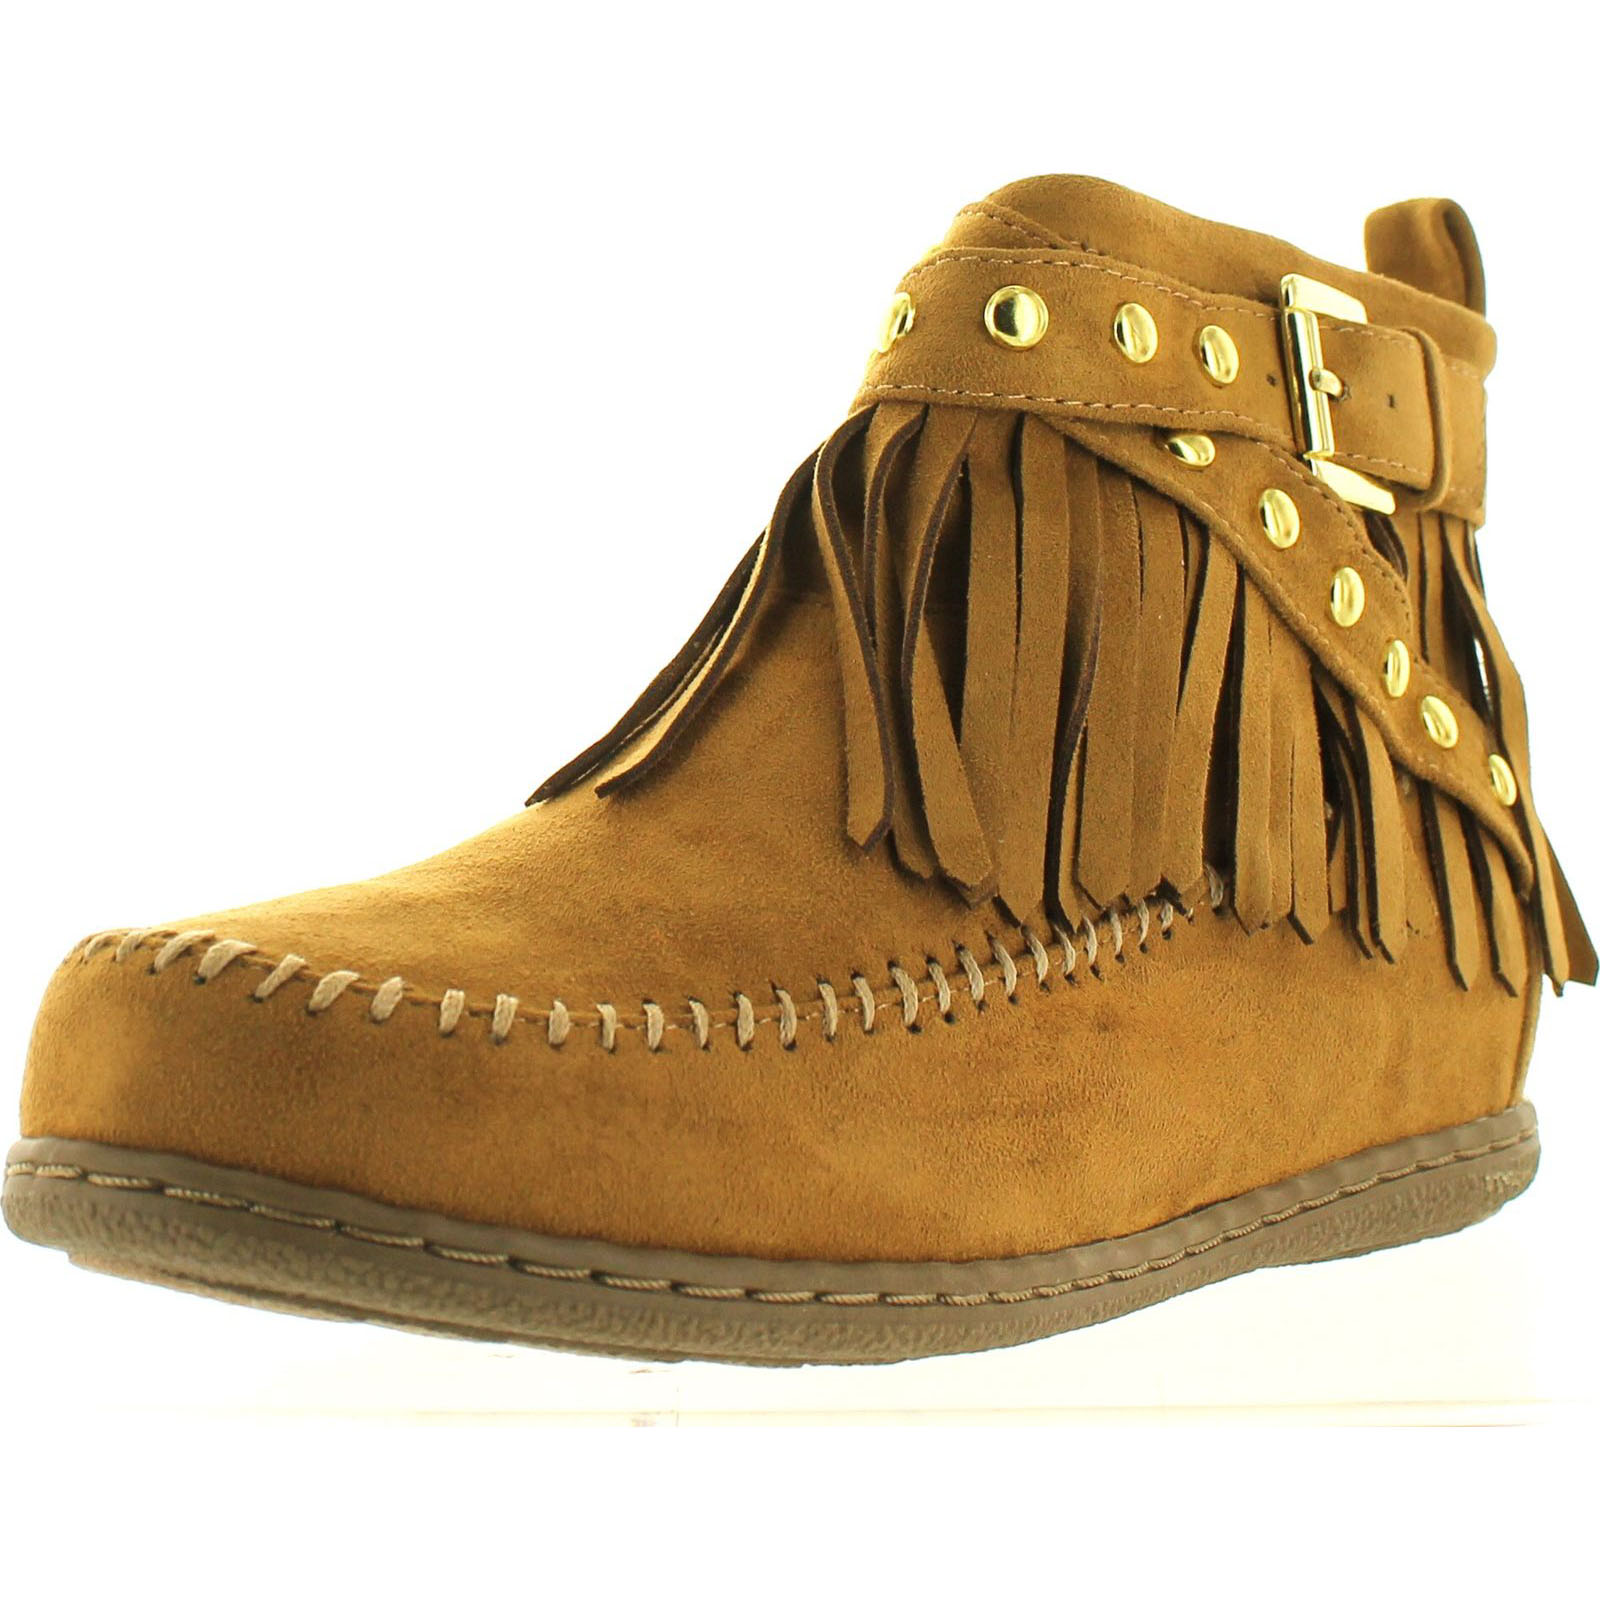 Soda Women's Dahlia Faux Suede Moccasin Fringe Wedge Ankle Booties